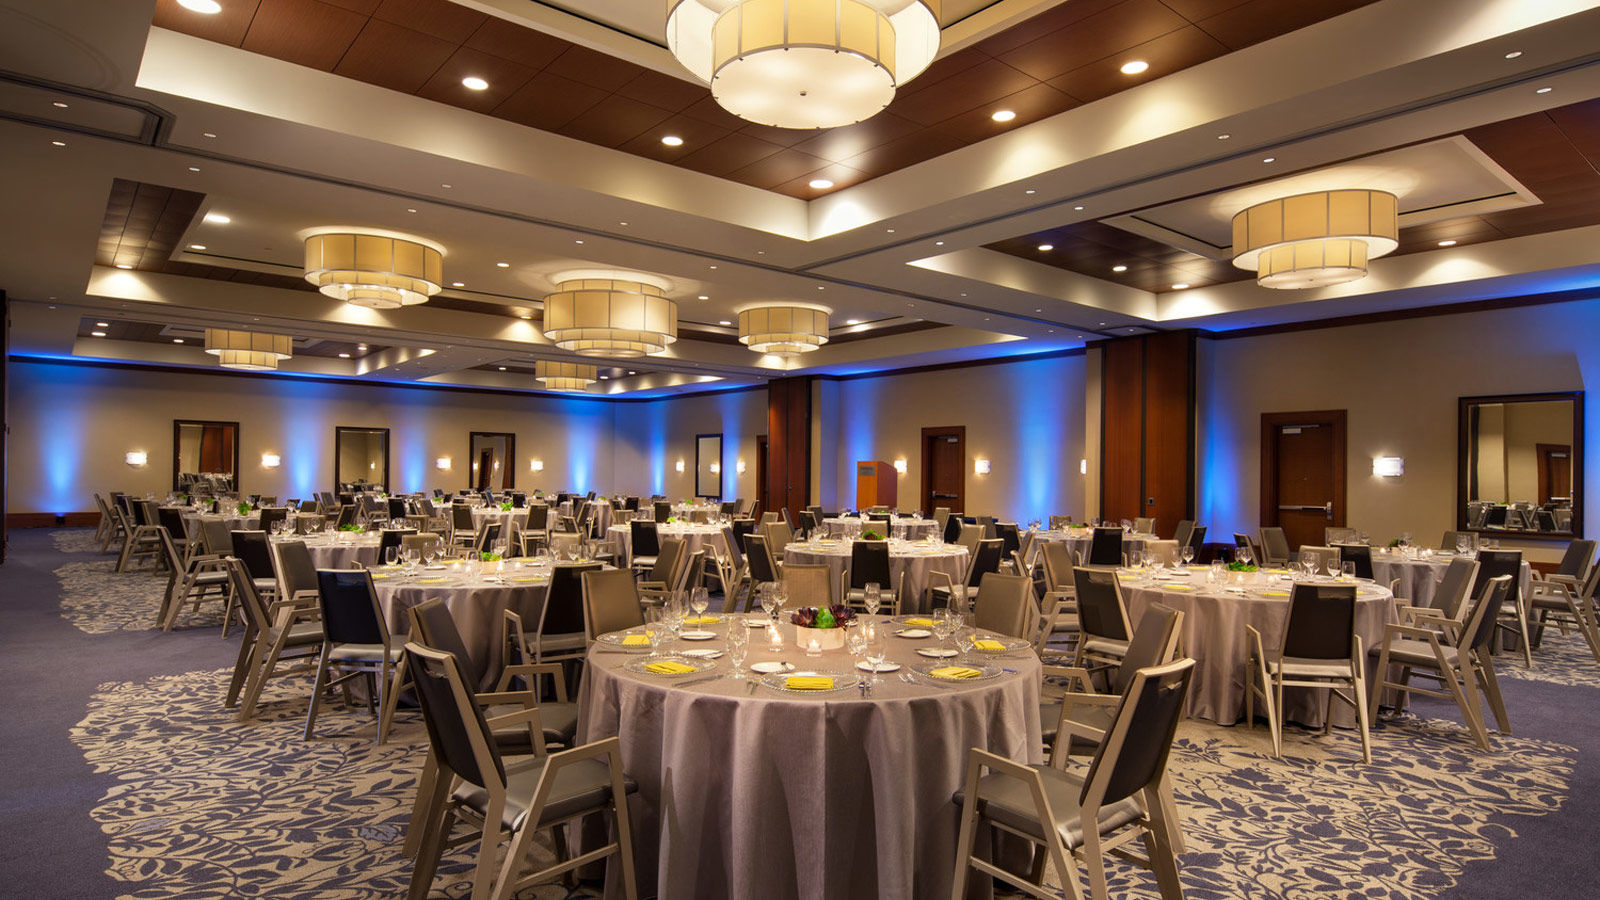 The Wisteria Ballroom - an elegant and sophisticated venue for a memorable Houston Wedding.